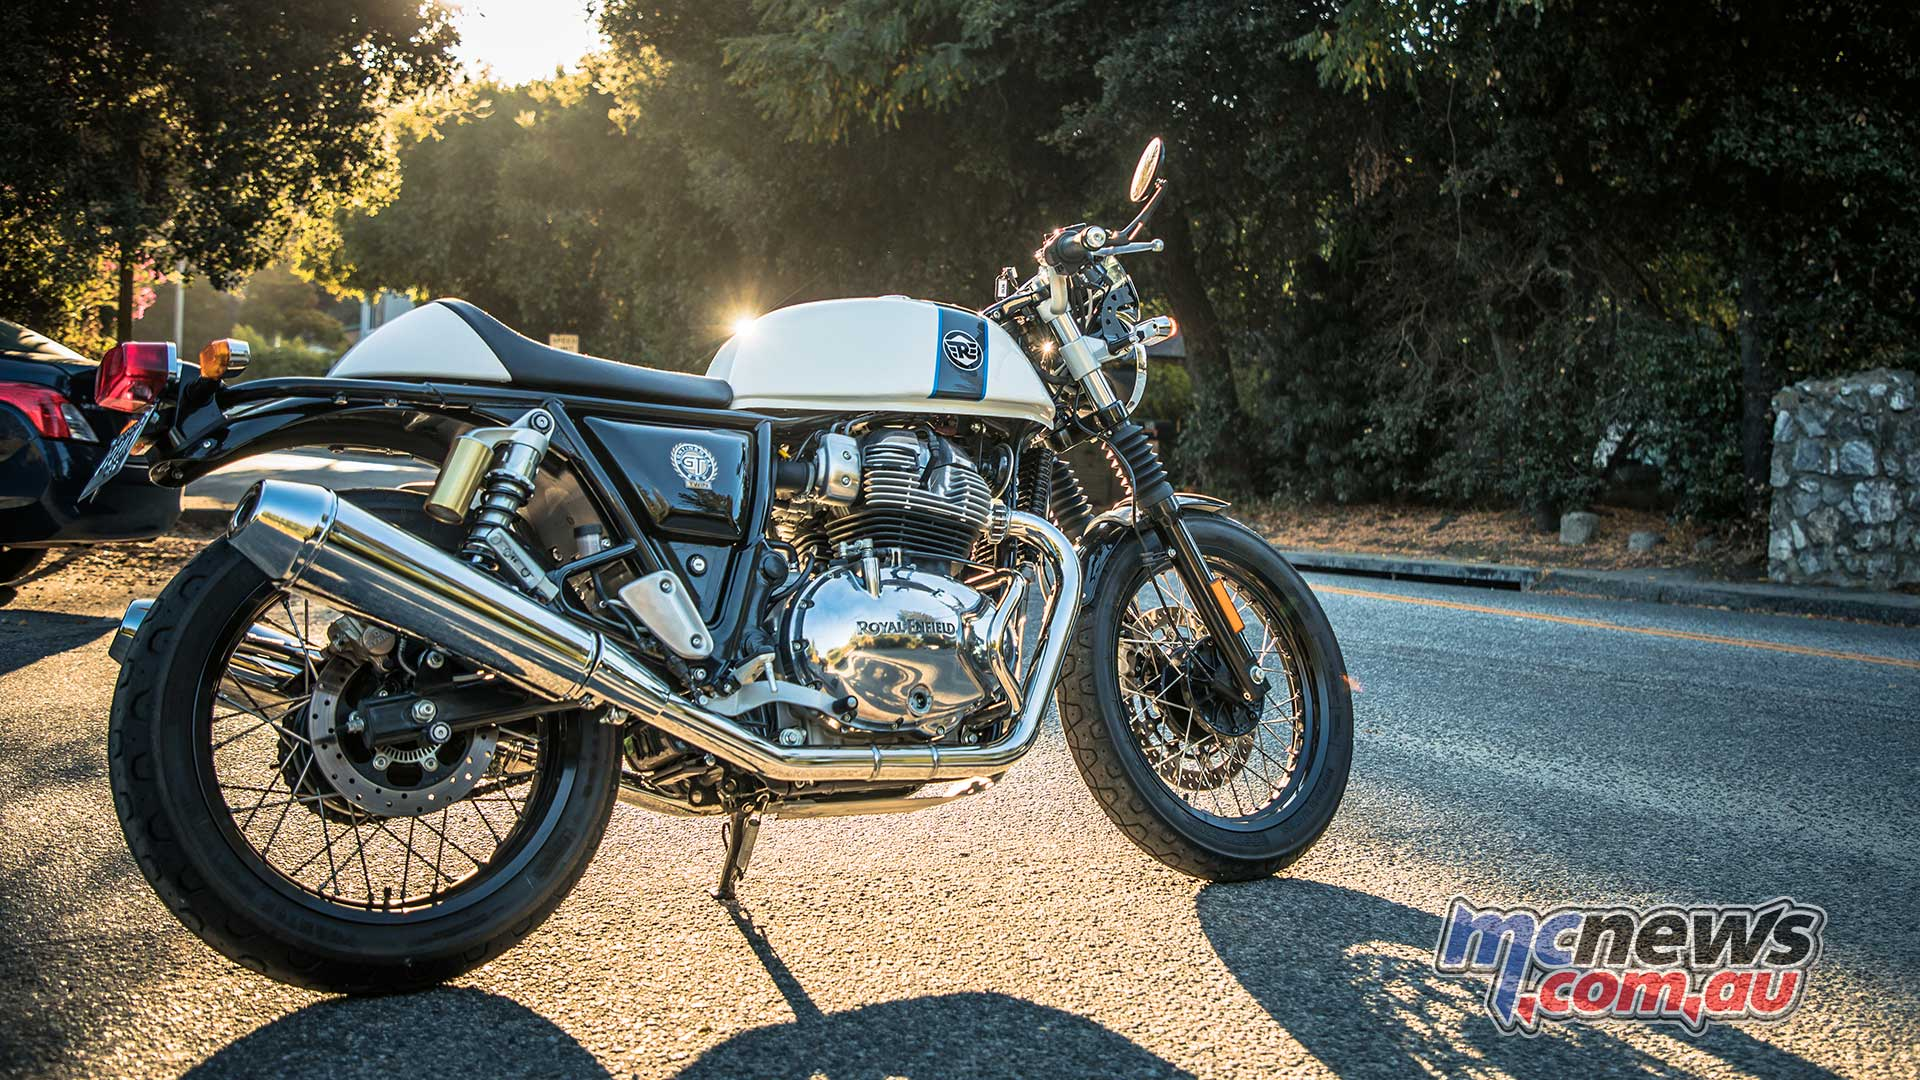 Royal Enfield Continental Gt >> Royal Enfield 650 Continental GT Review | Interceptor Test | MCNews.com.au